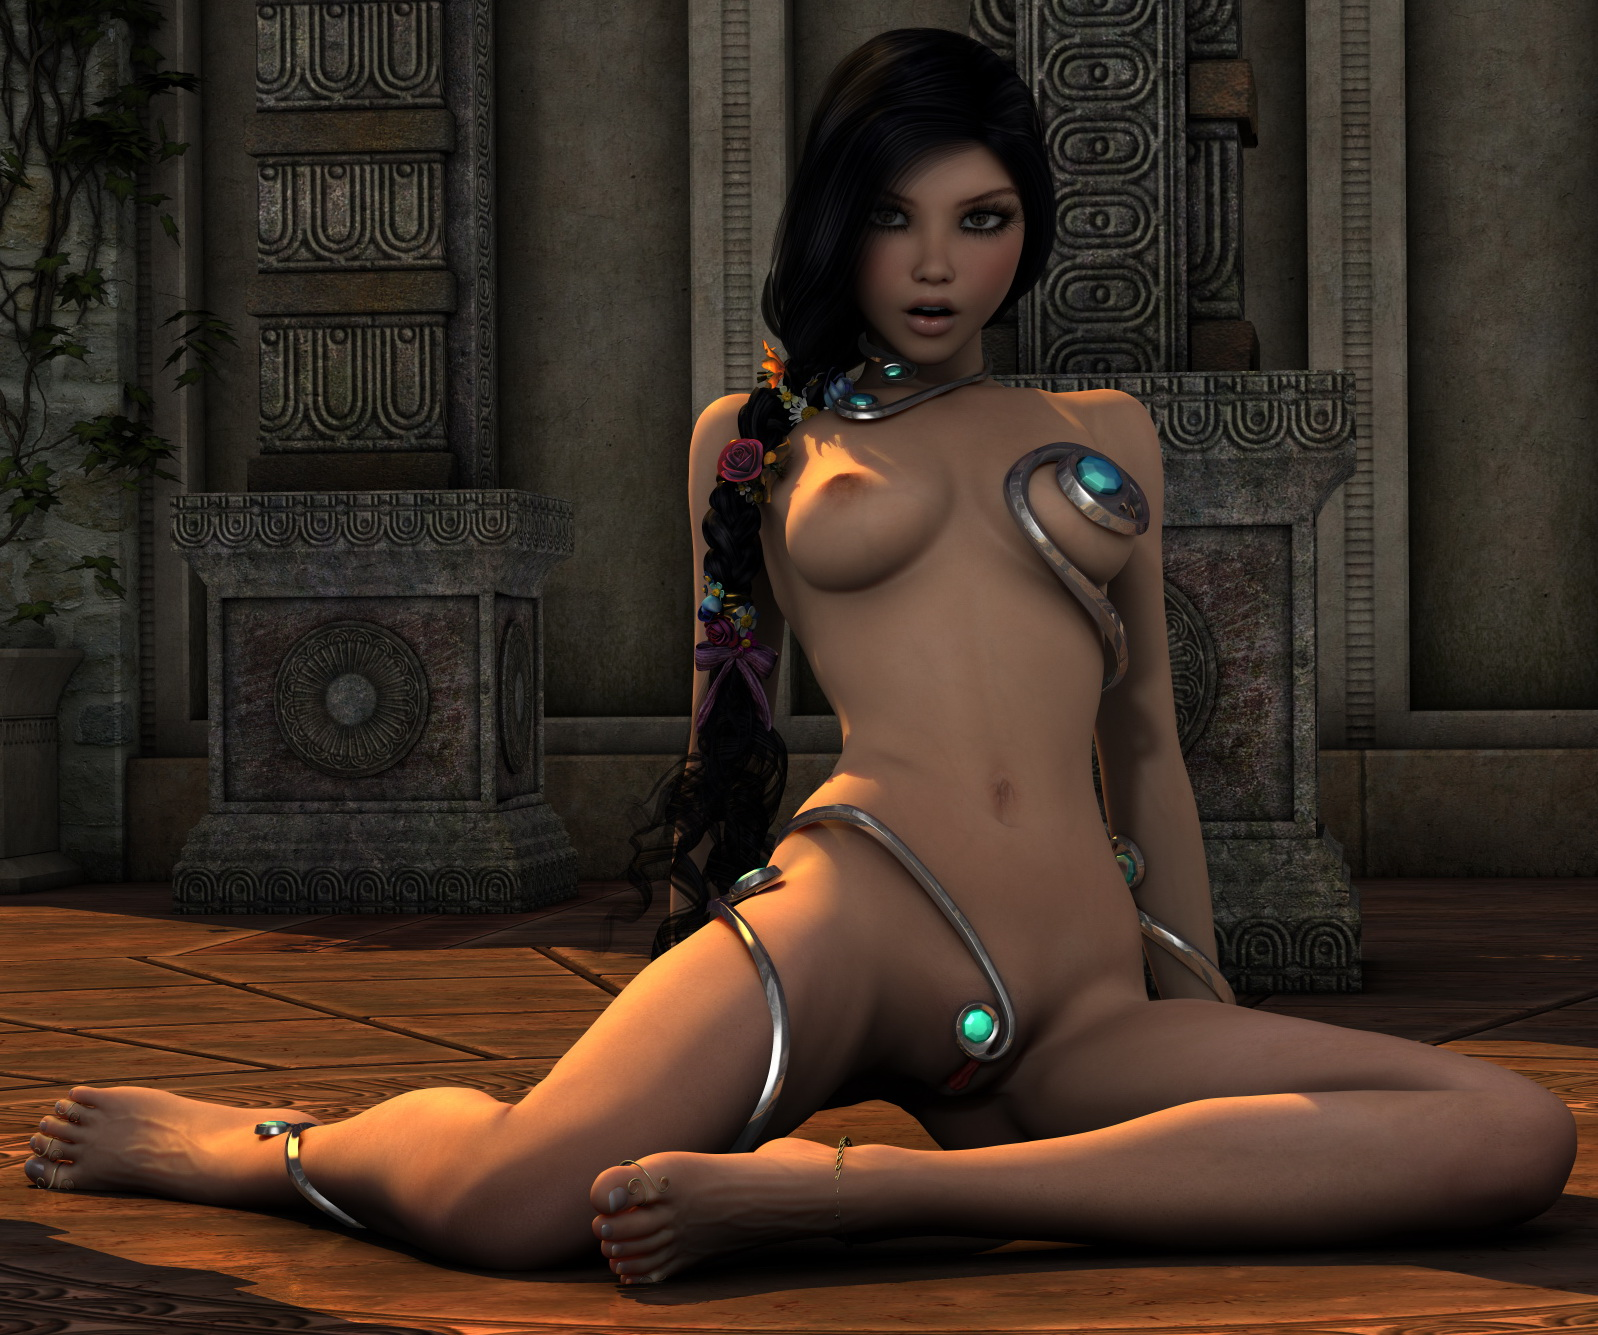 Nude 3d elf toons erotic photo